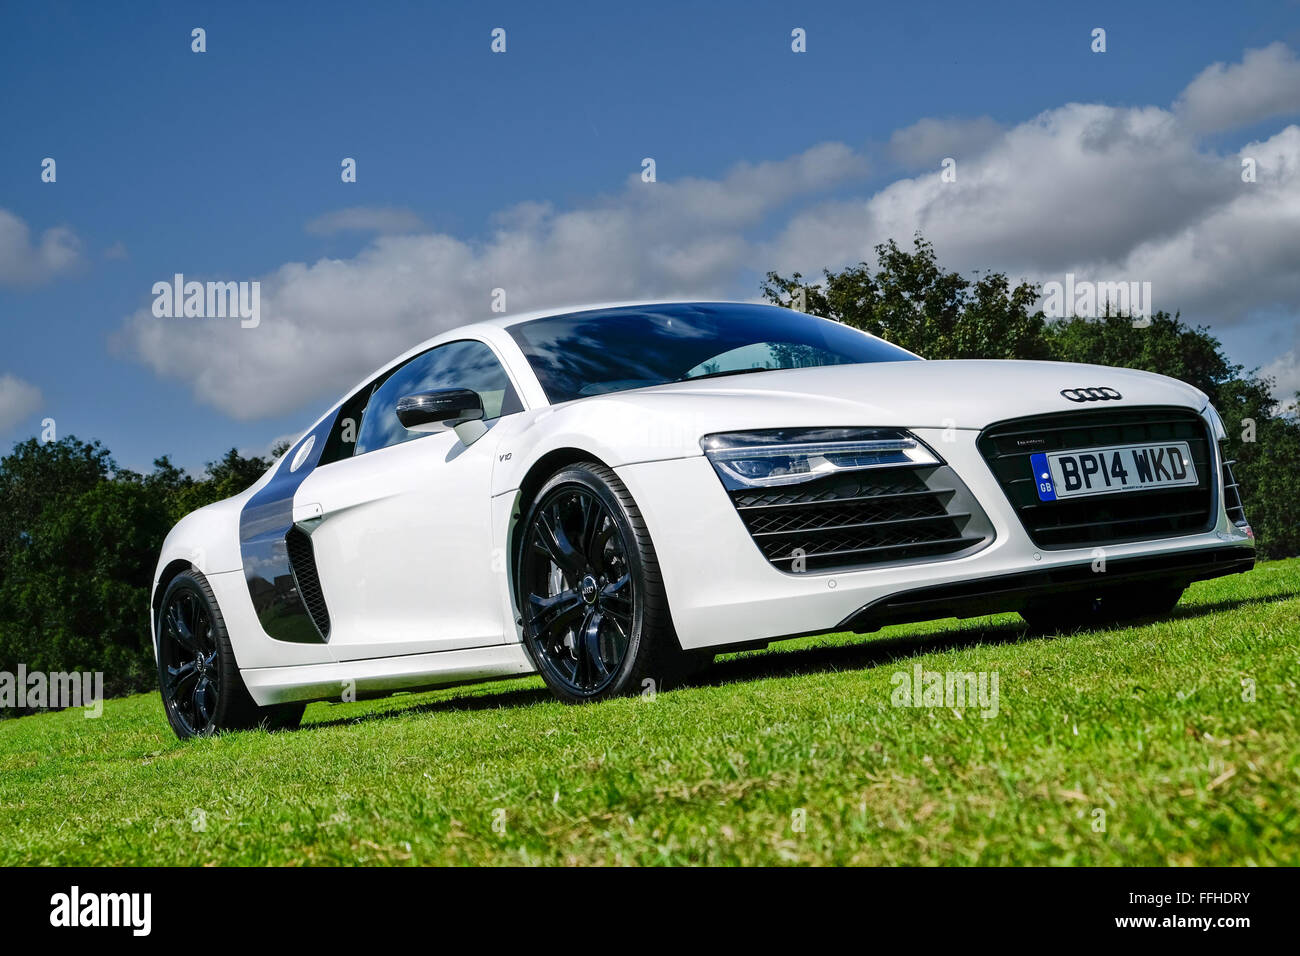 A white Audi r8 on a sunny day stood on grass - Stock Image